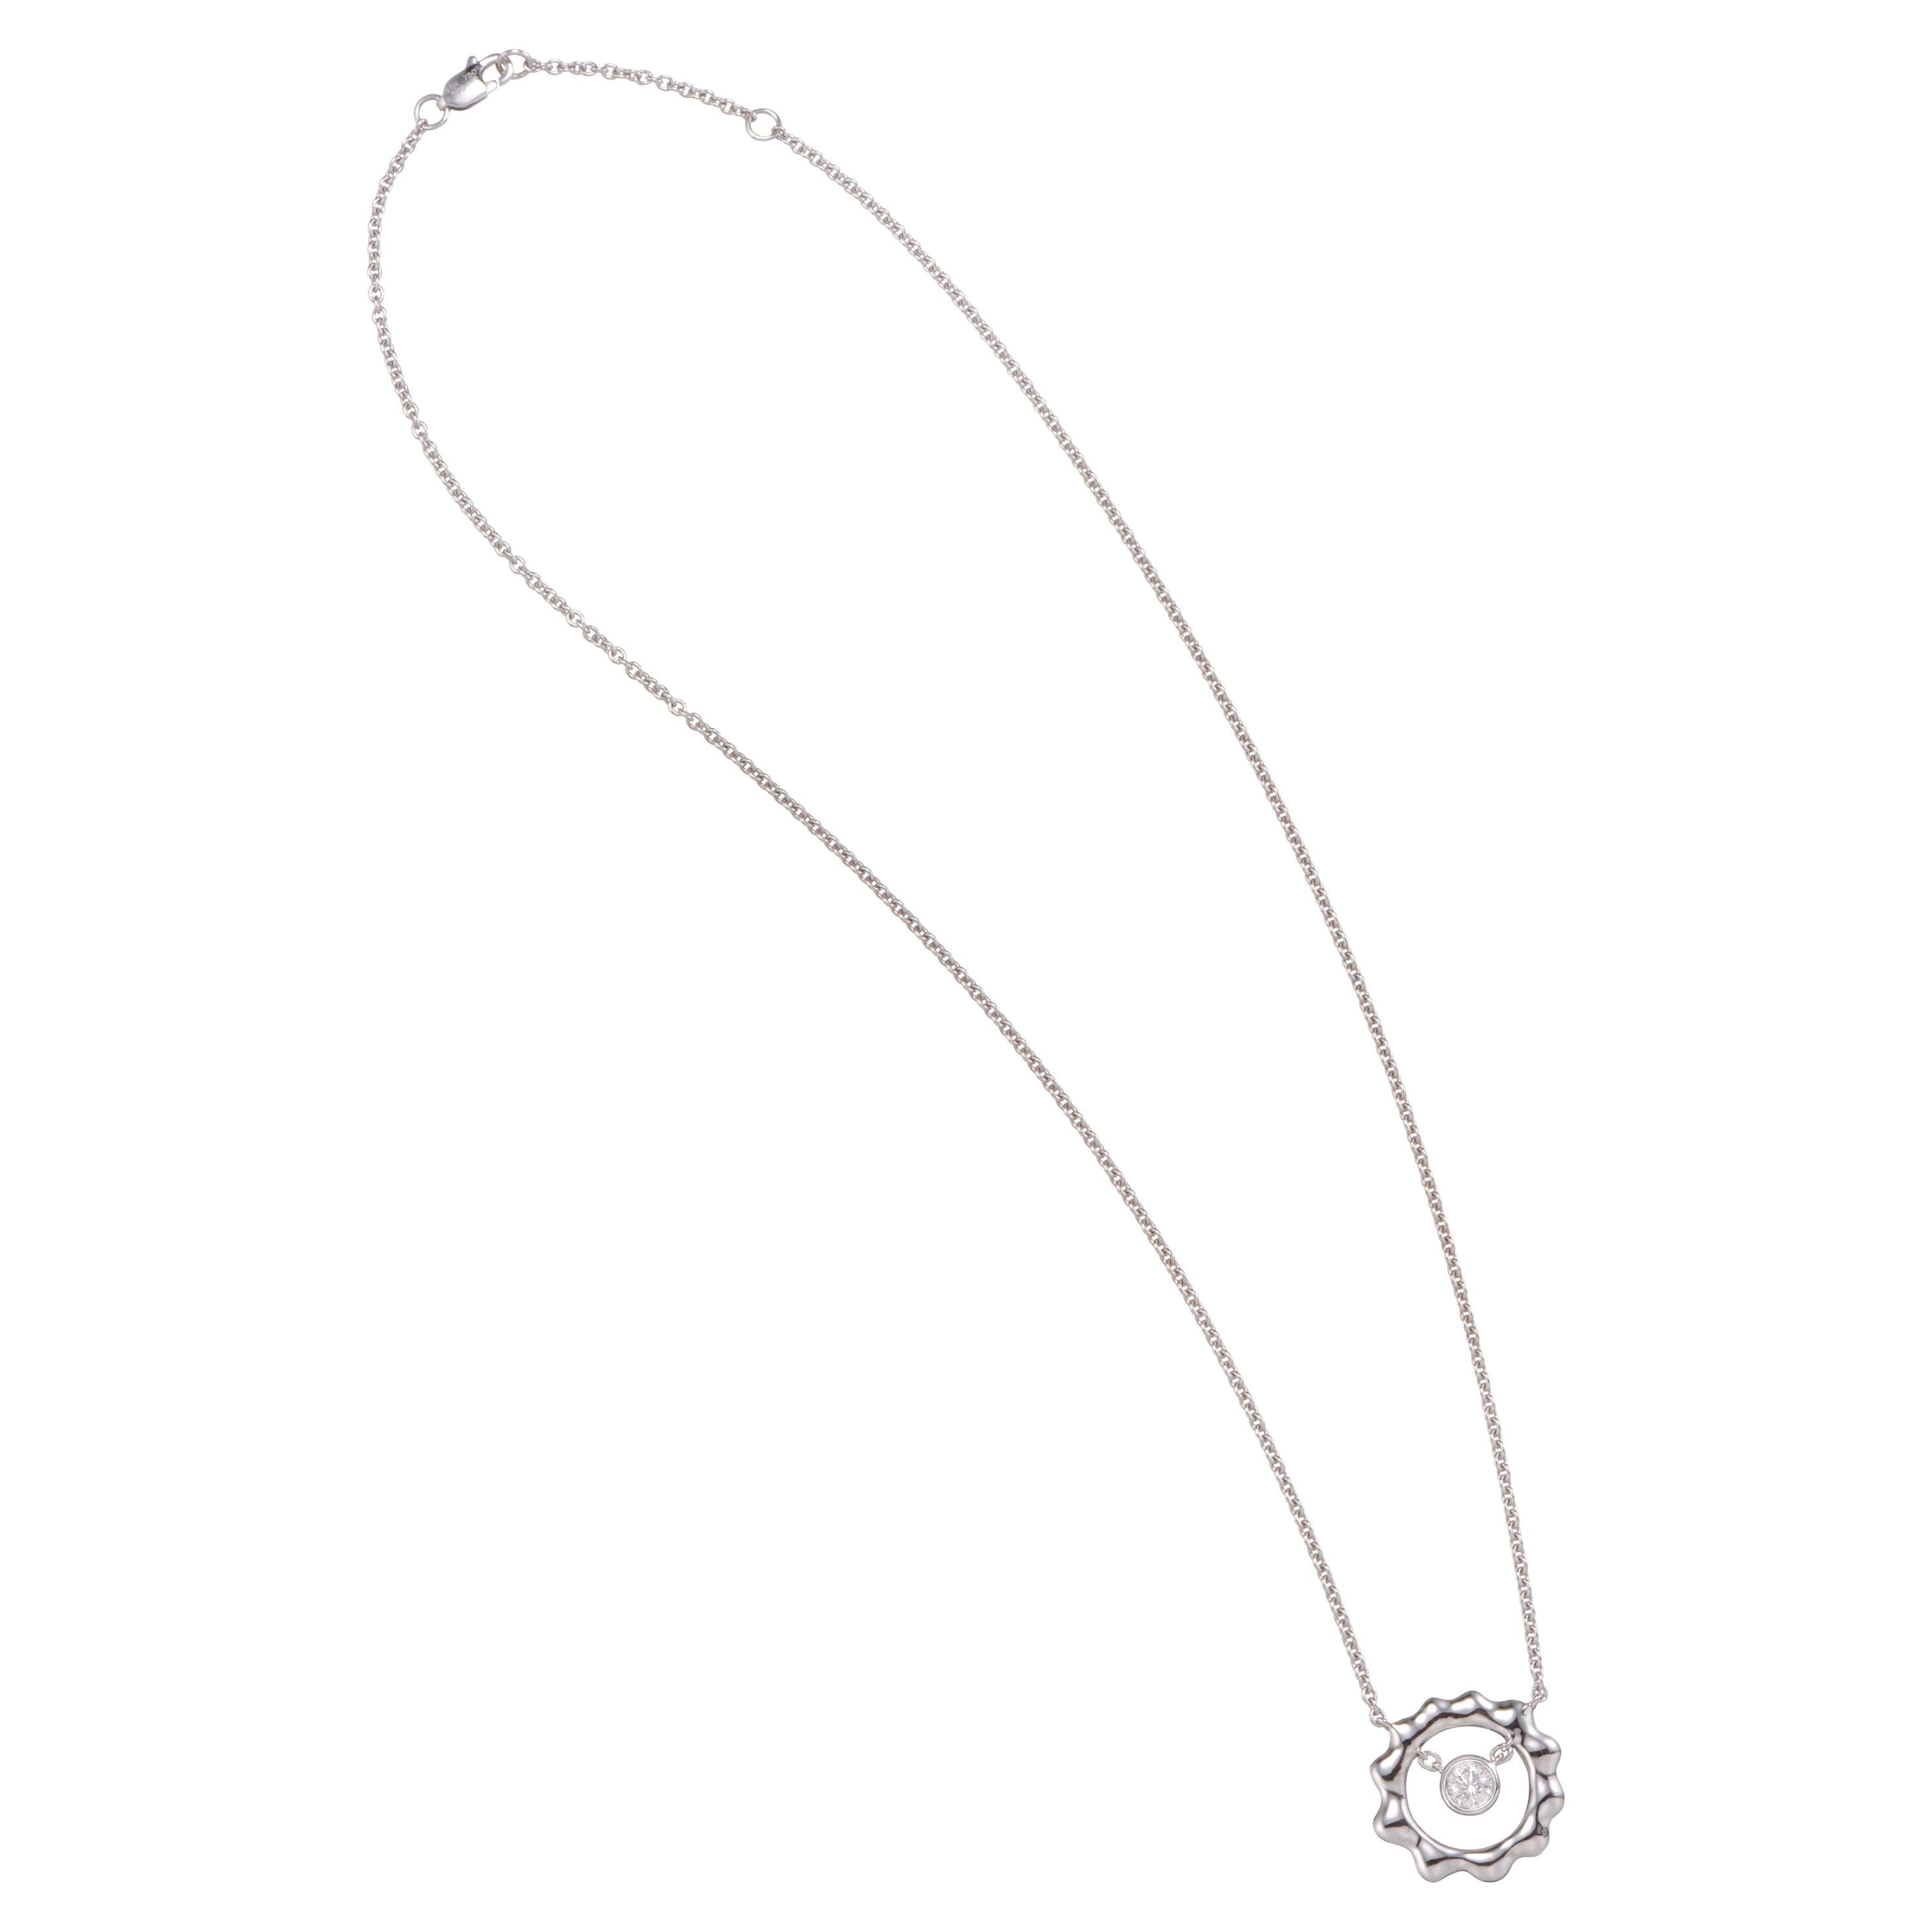 0.28 Carat Diamond 18 Karat White Gold Pendant Necklace